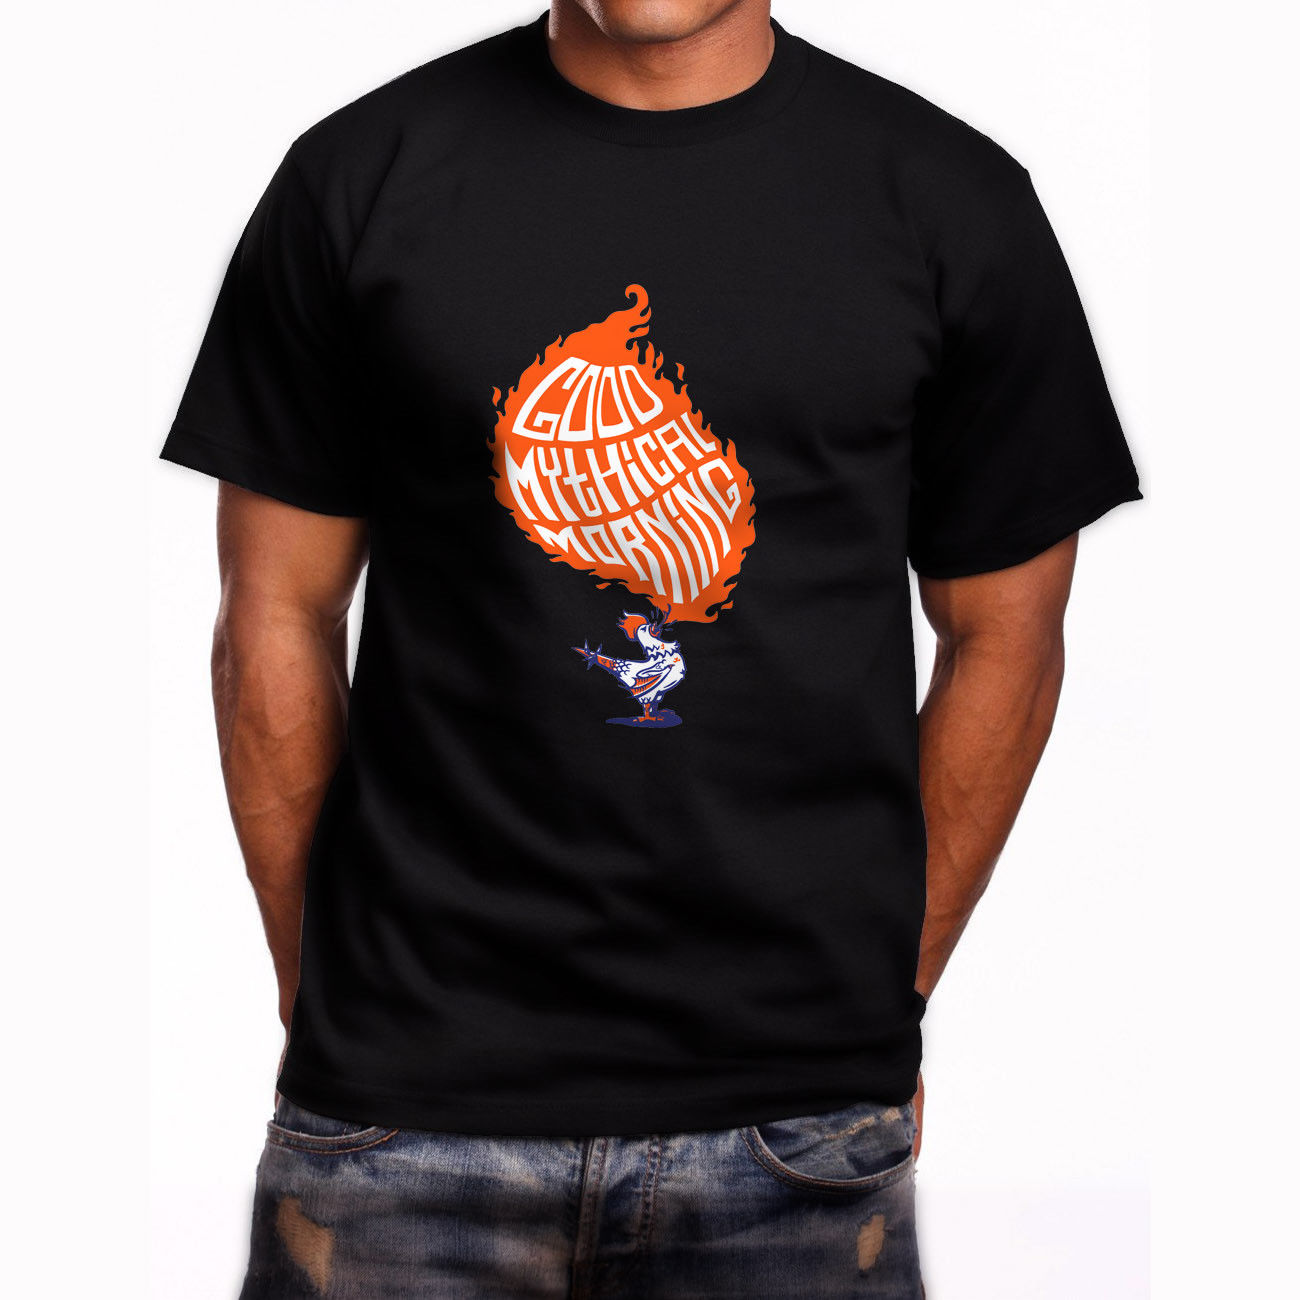 New Good Mythical Morning Short Sleeve Mens Black T-Shirt Size S To 3XL Cheap Price 100 % Cotton Tee Shirts T Shirt